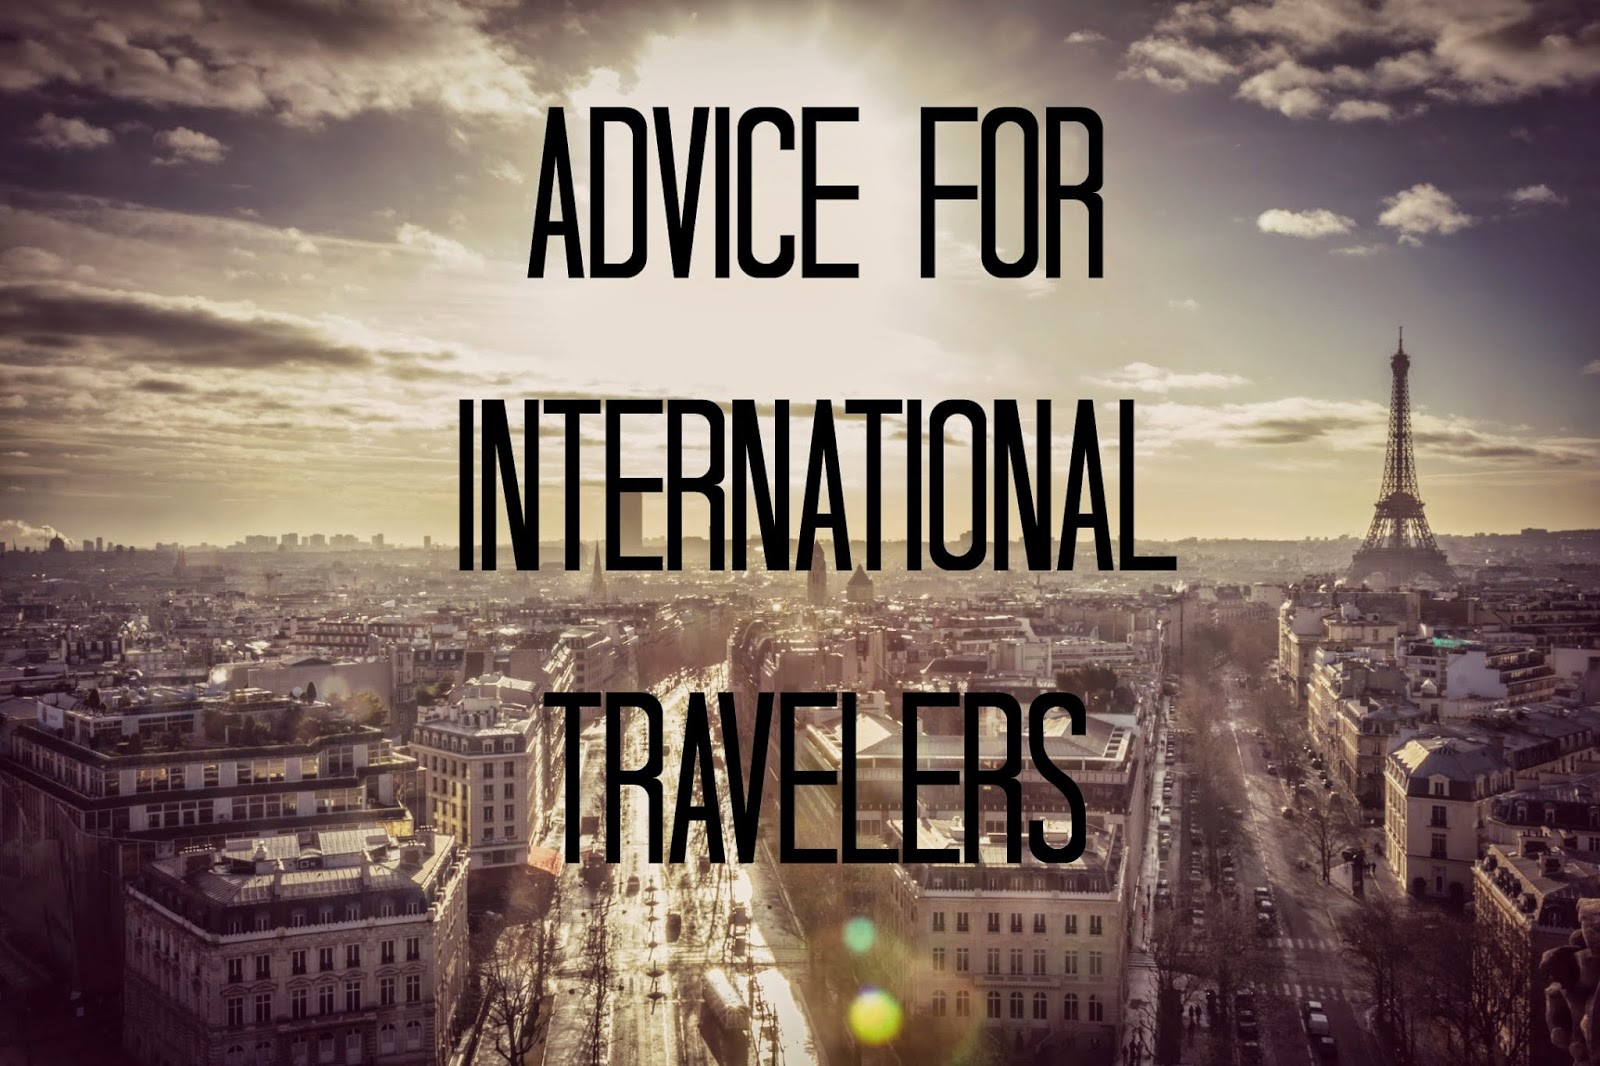 Advice for International Travelers